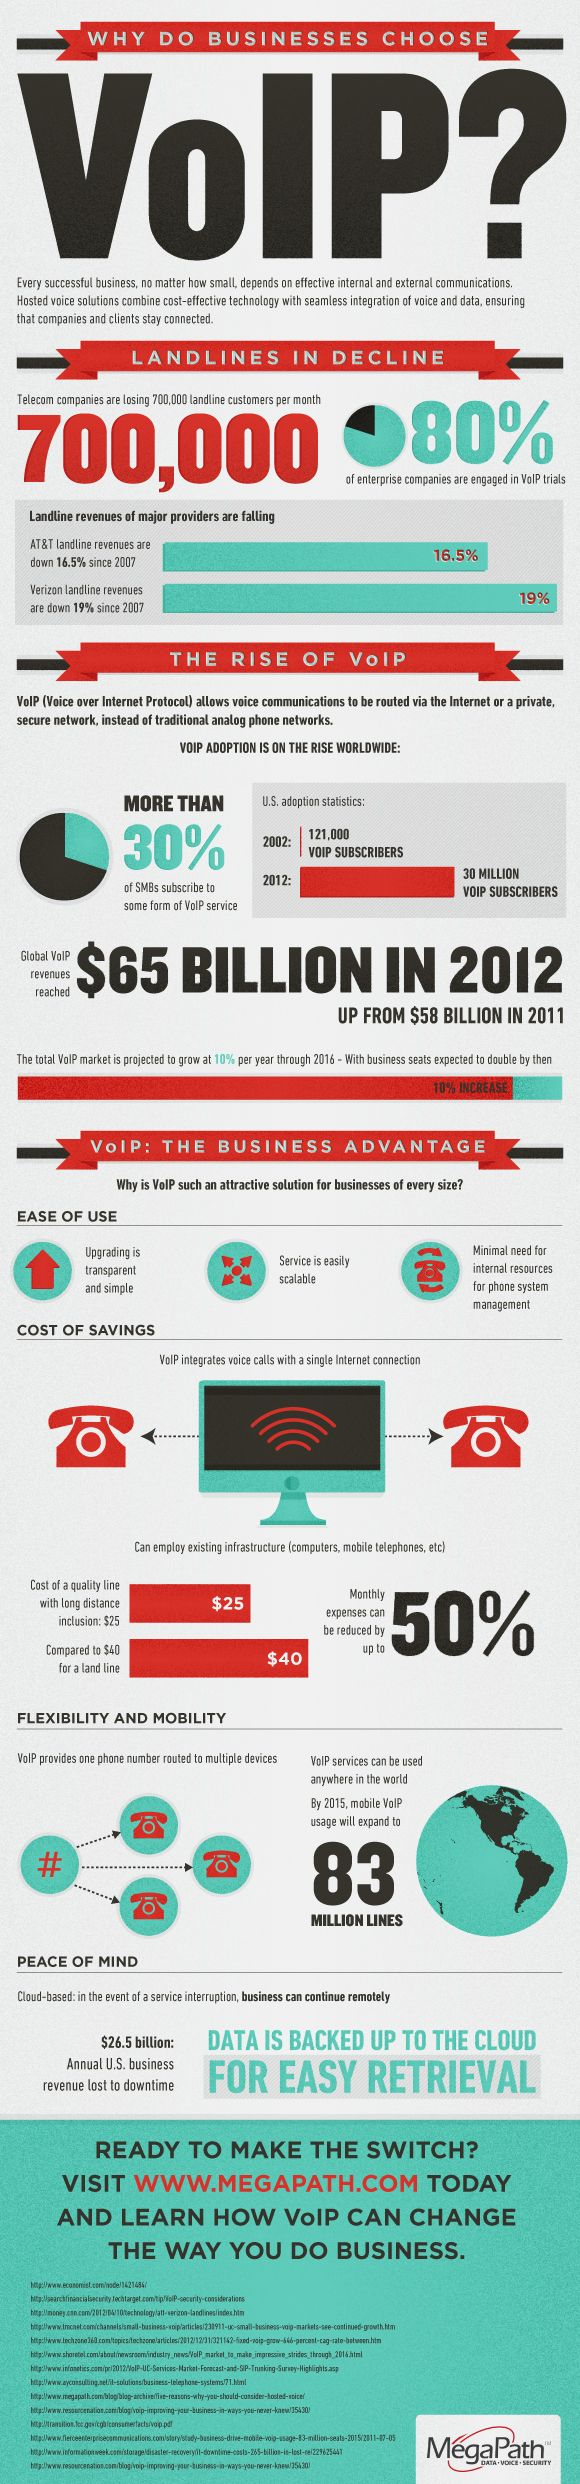 Have you ever wondered why businesses use VoIP (Voice over Internet Protocol) for their communications solutions?